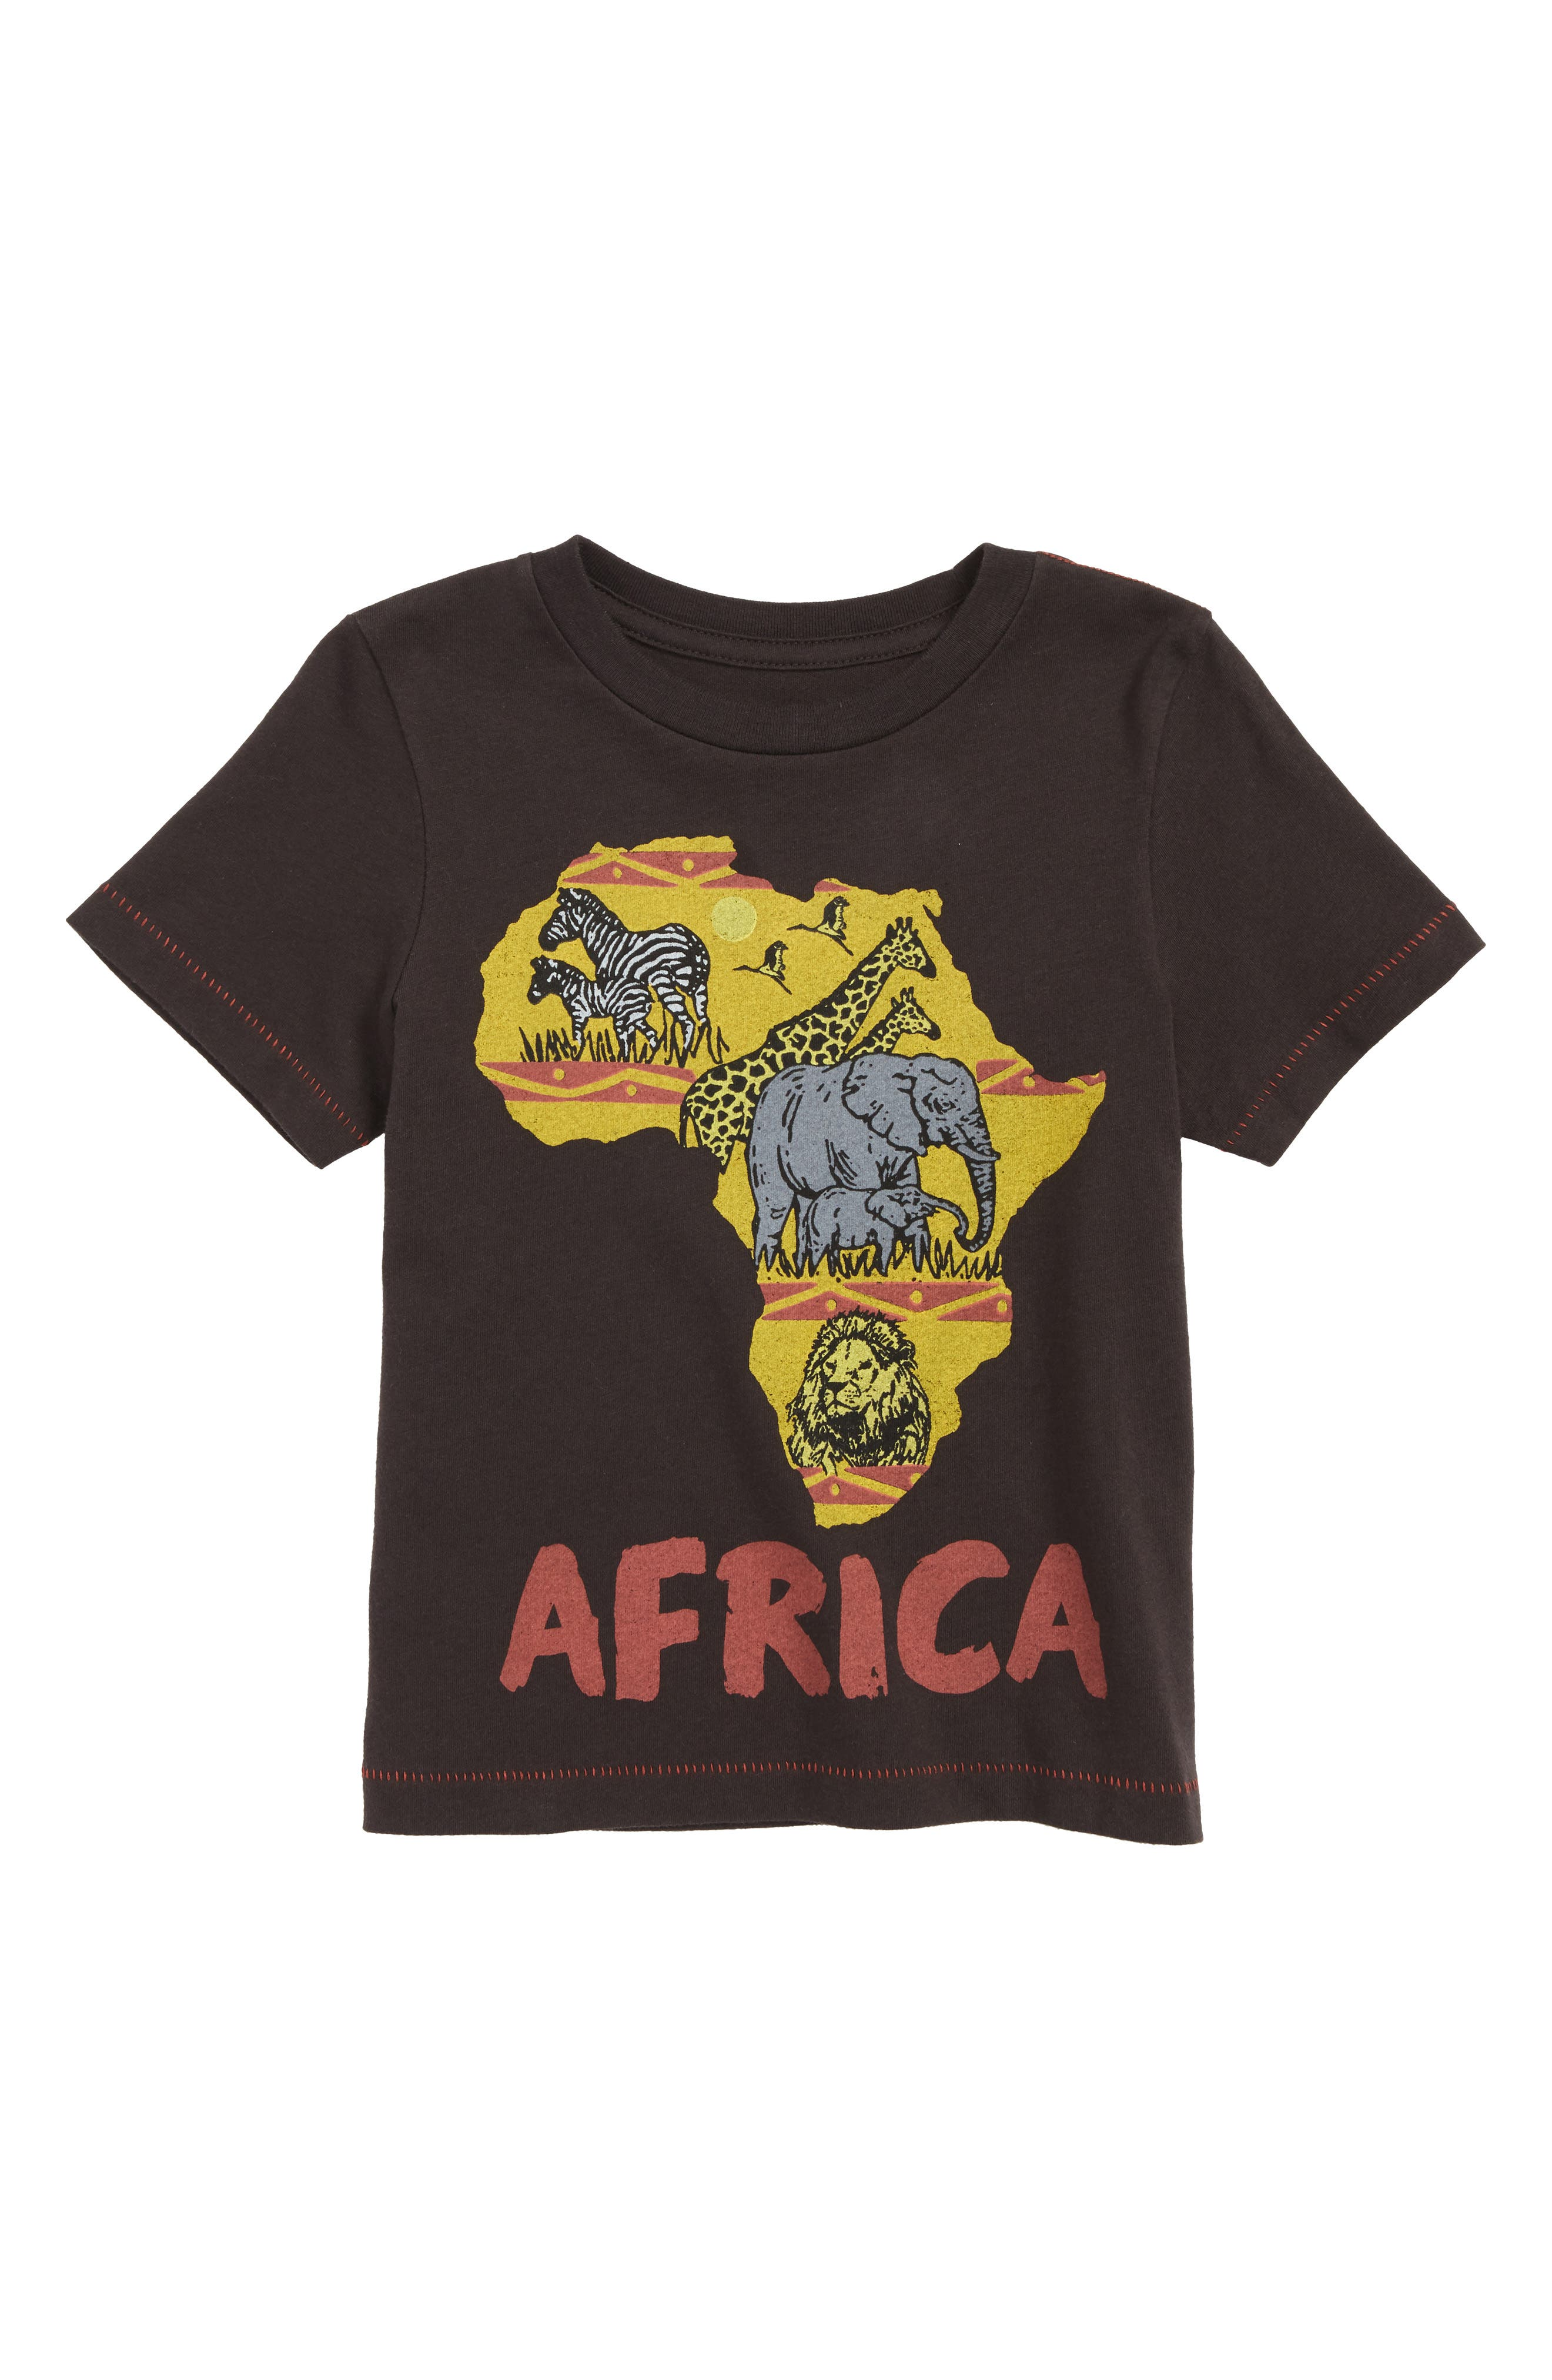 Africa Graphic T-Shirt,                         Main,                         color, Black